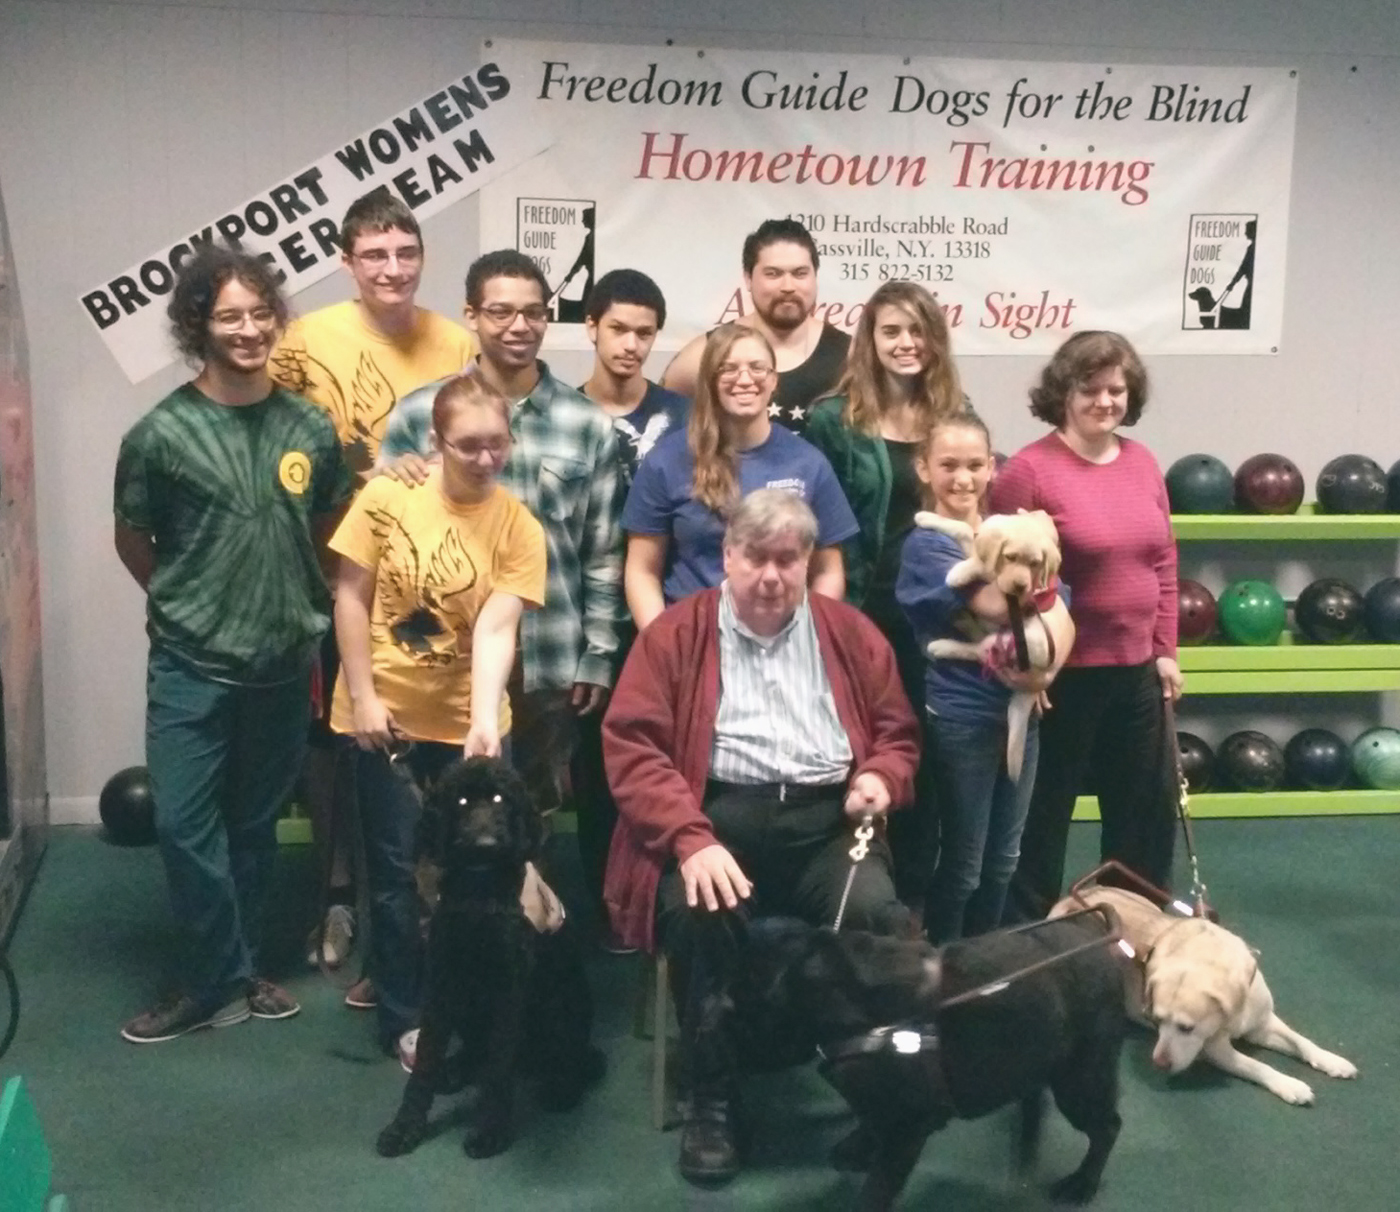 The Judo Club at The College at Brockport. Tom Flaherty, a Freedom Guide Dog graduate (front), and his guide dog partner Biscuit. Provided photo